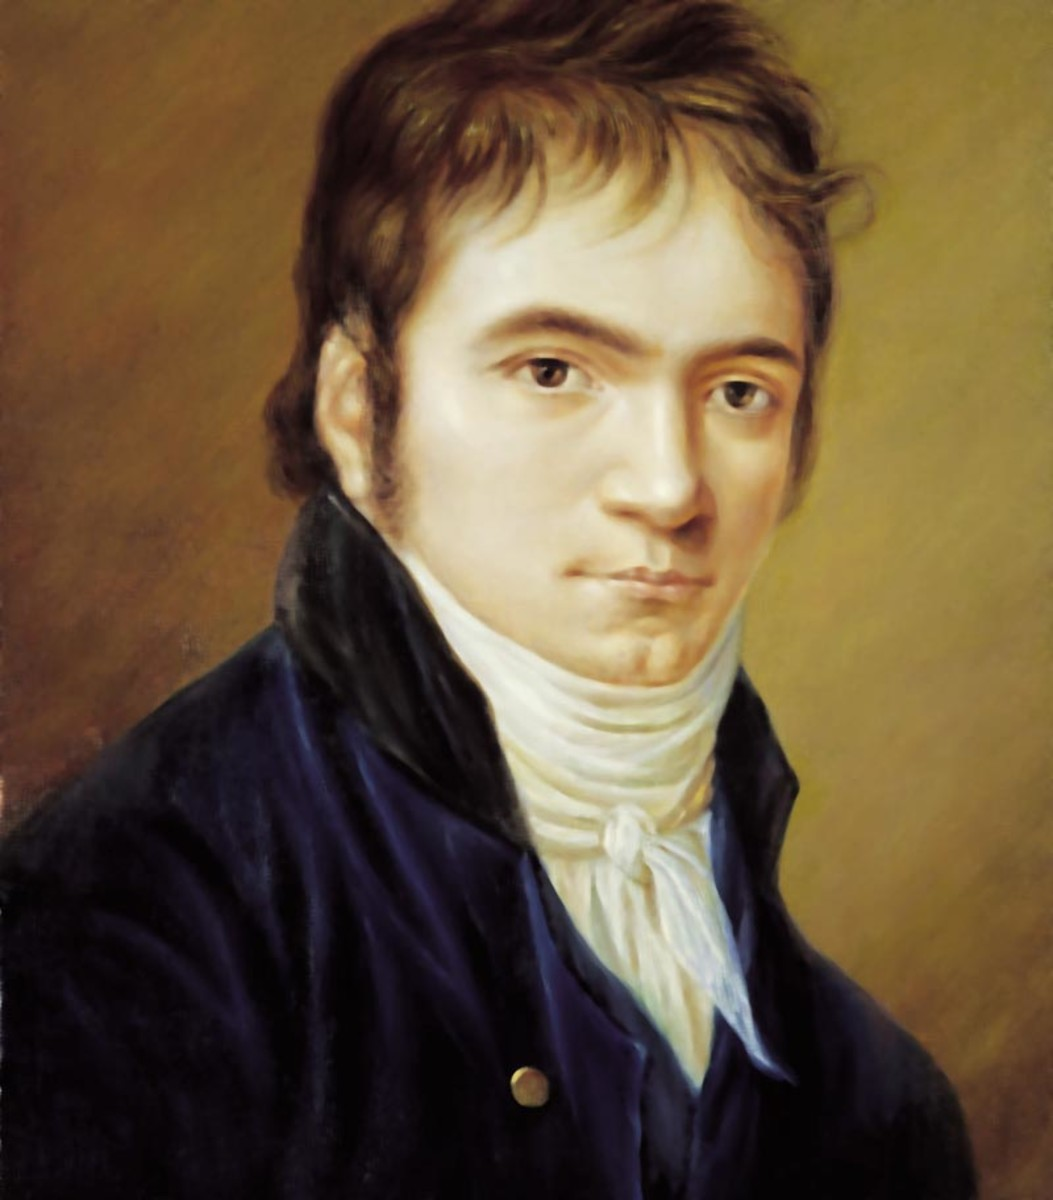 Painting of Beethoven in 1803 around the time he was composing the 3rd Symphony